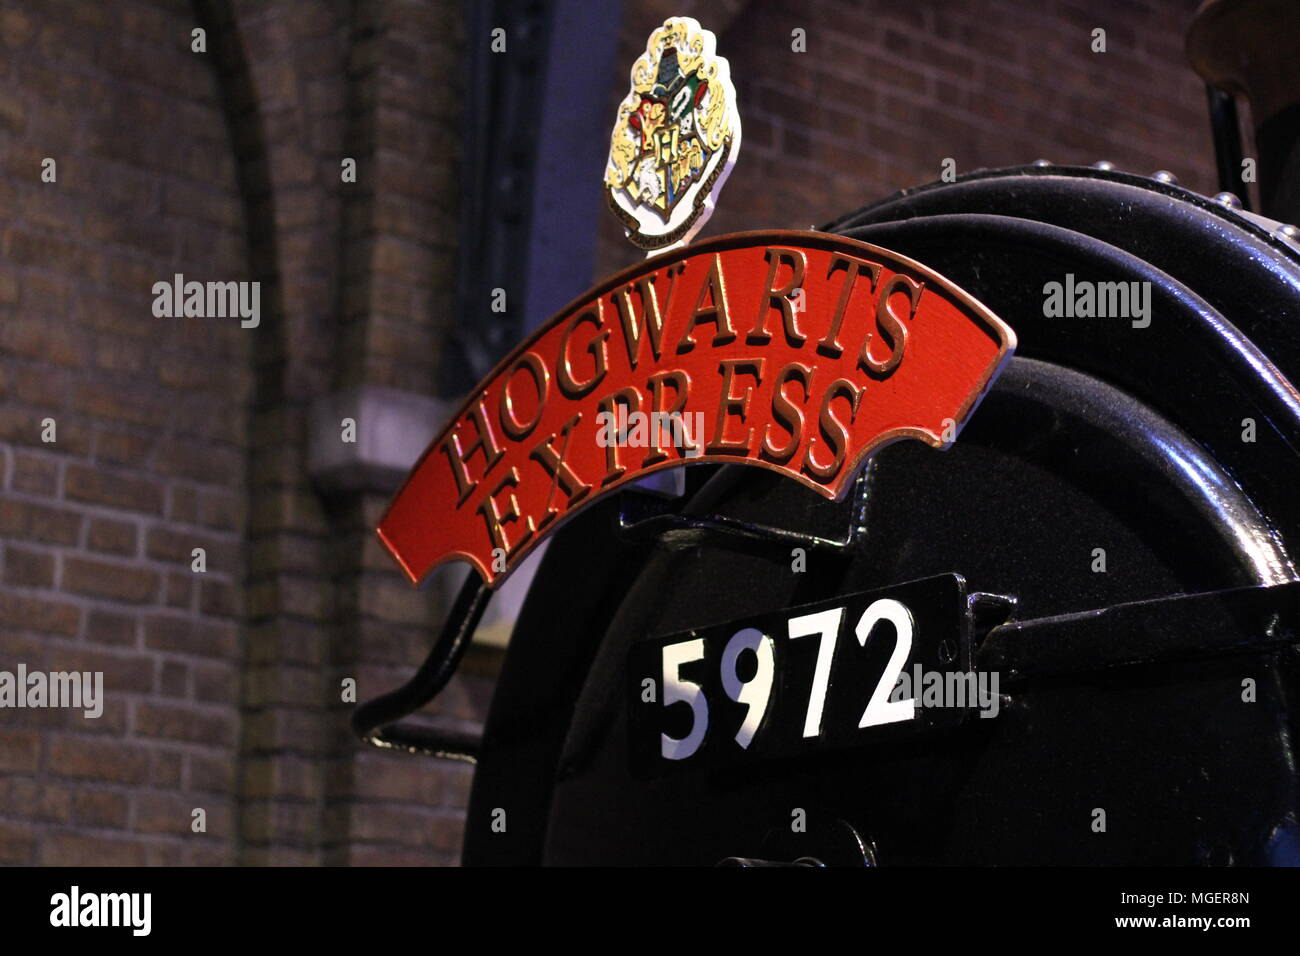 etail of the Hogwarts express locomotive with the red writing and the number of the train departing from platform nine and three quarters Stock Photo